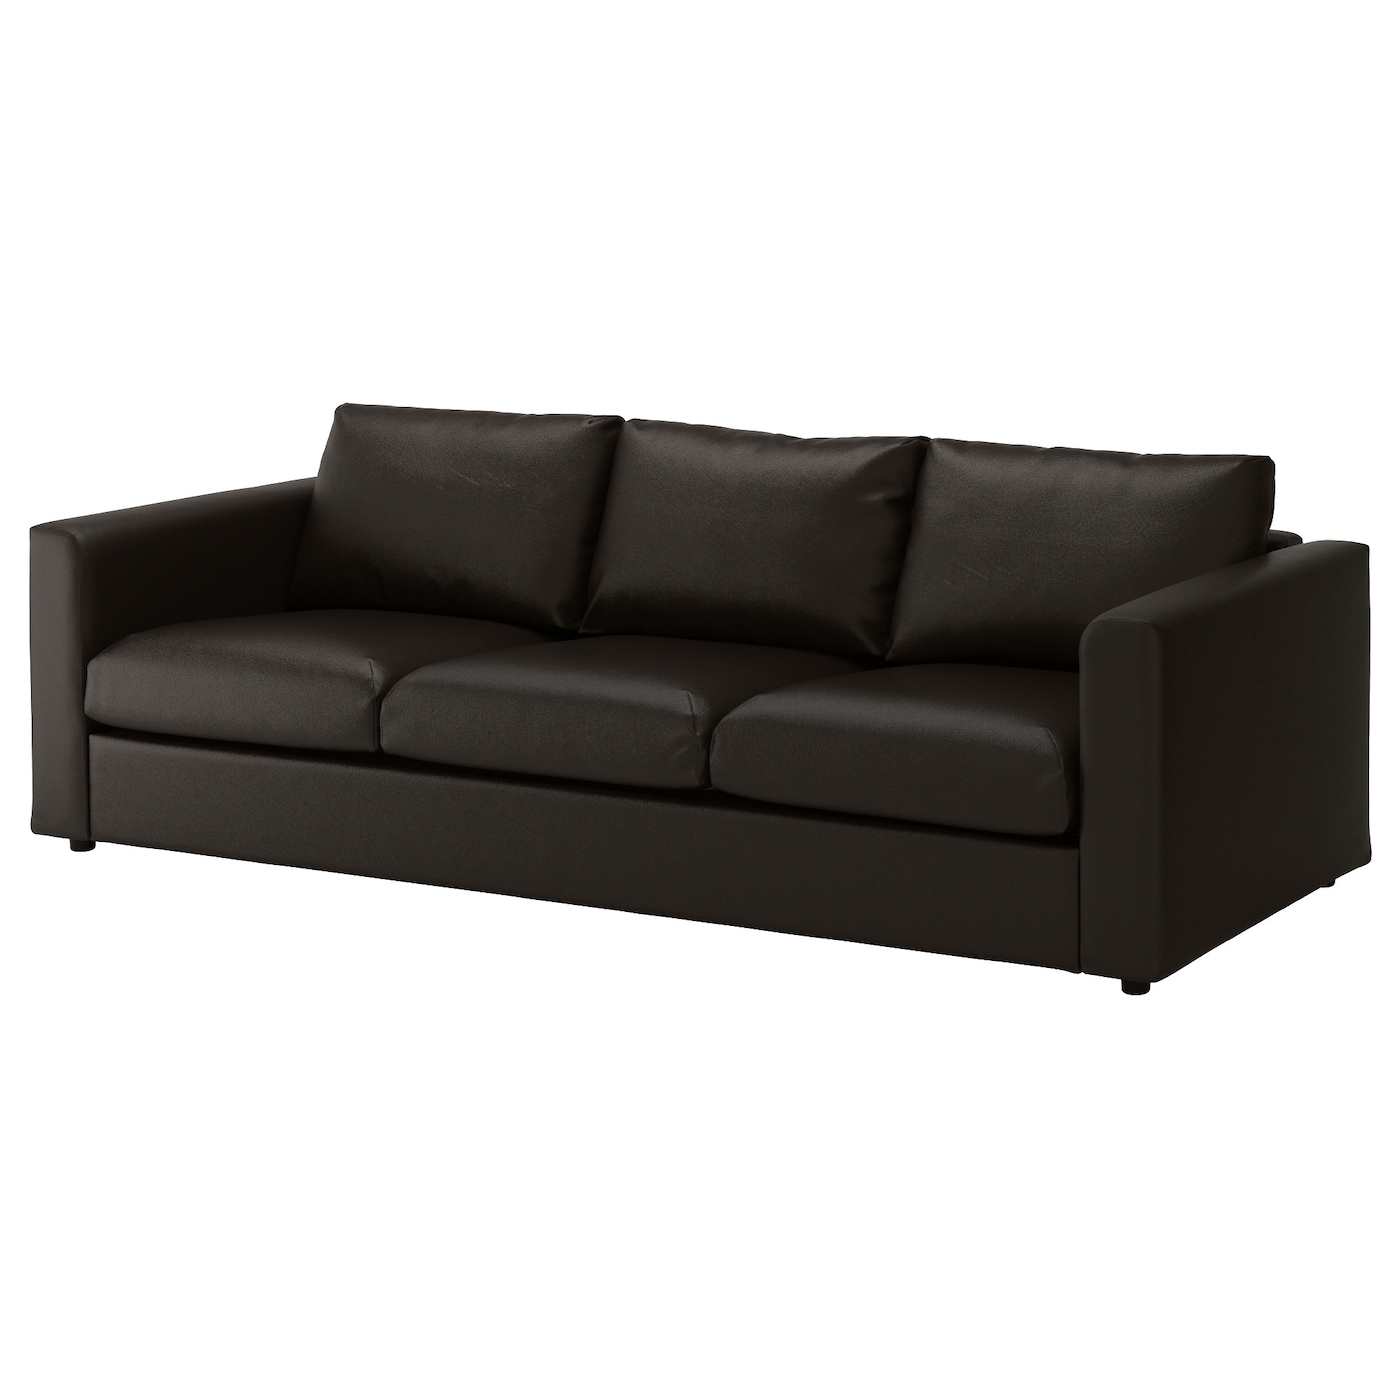 Vimle 3 seat sofa farsta black ikea for Couch und sofa fürth